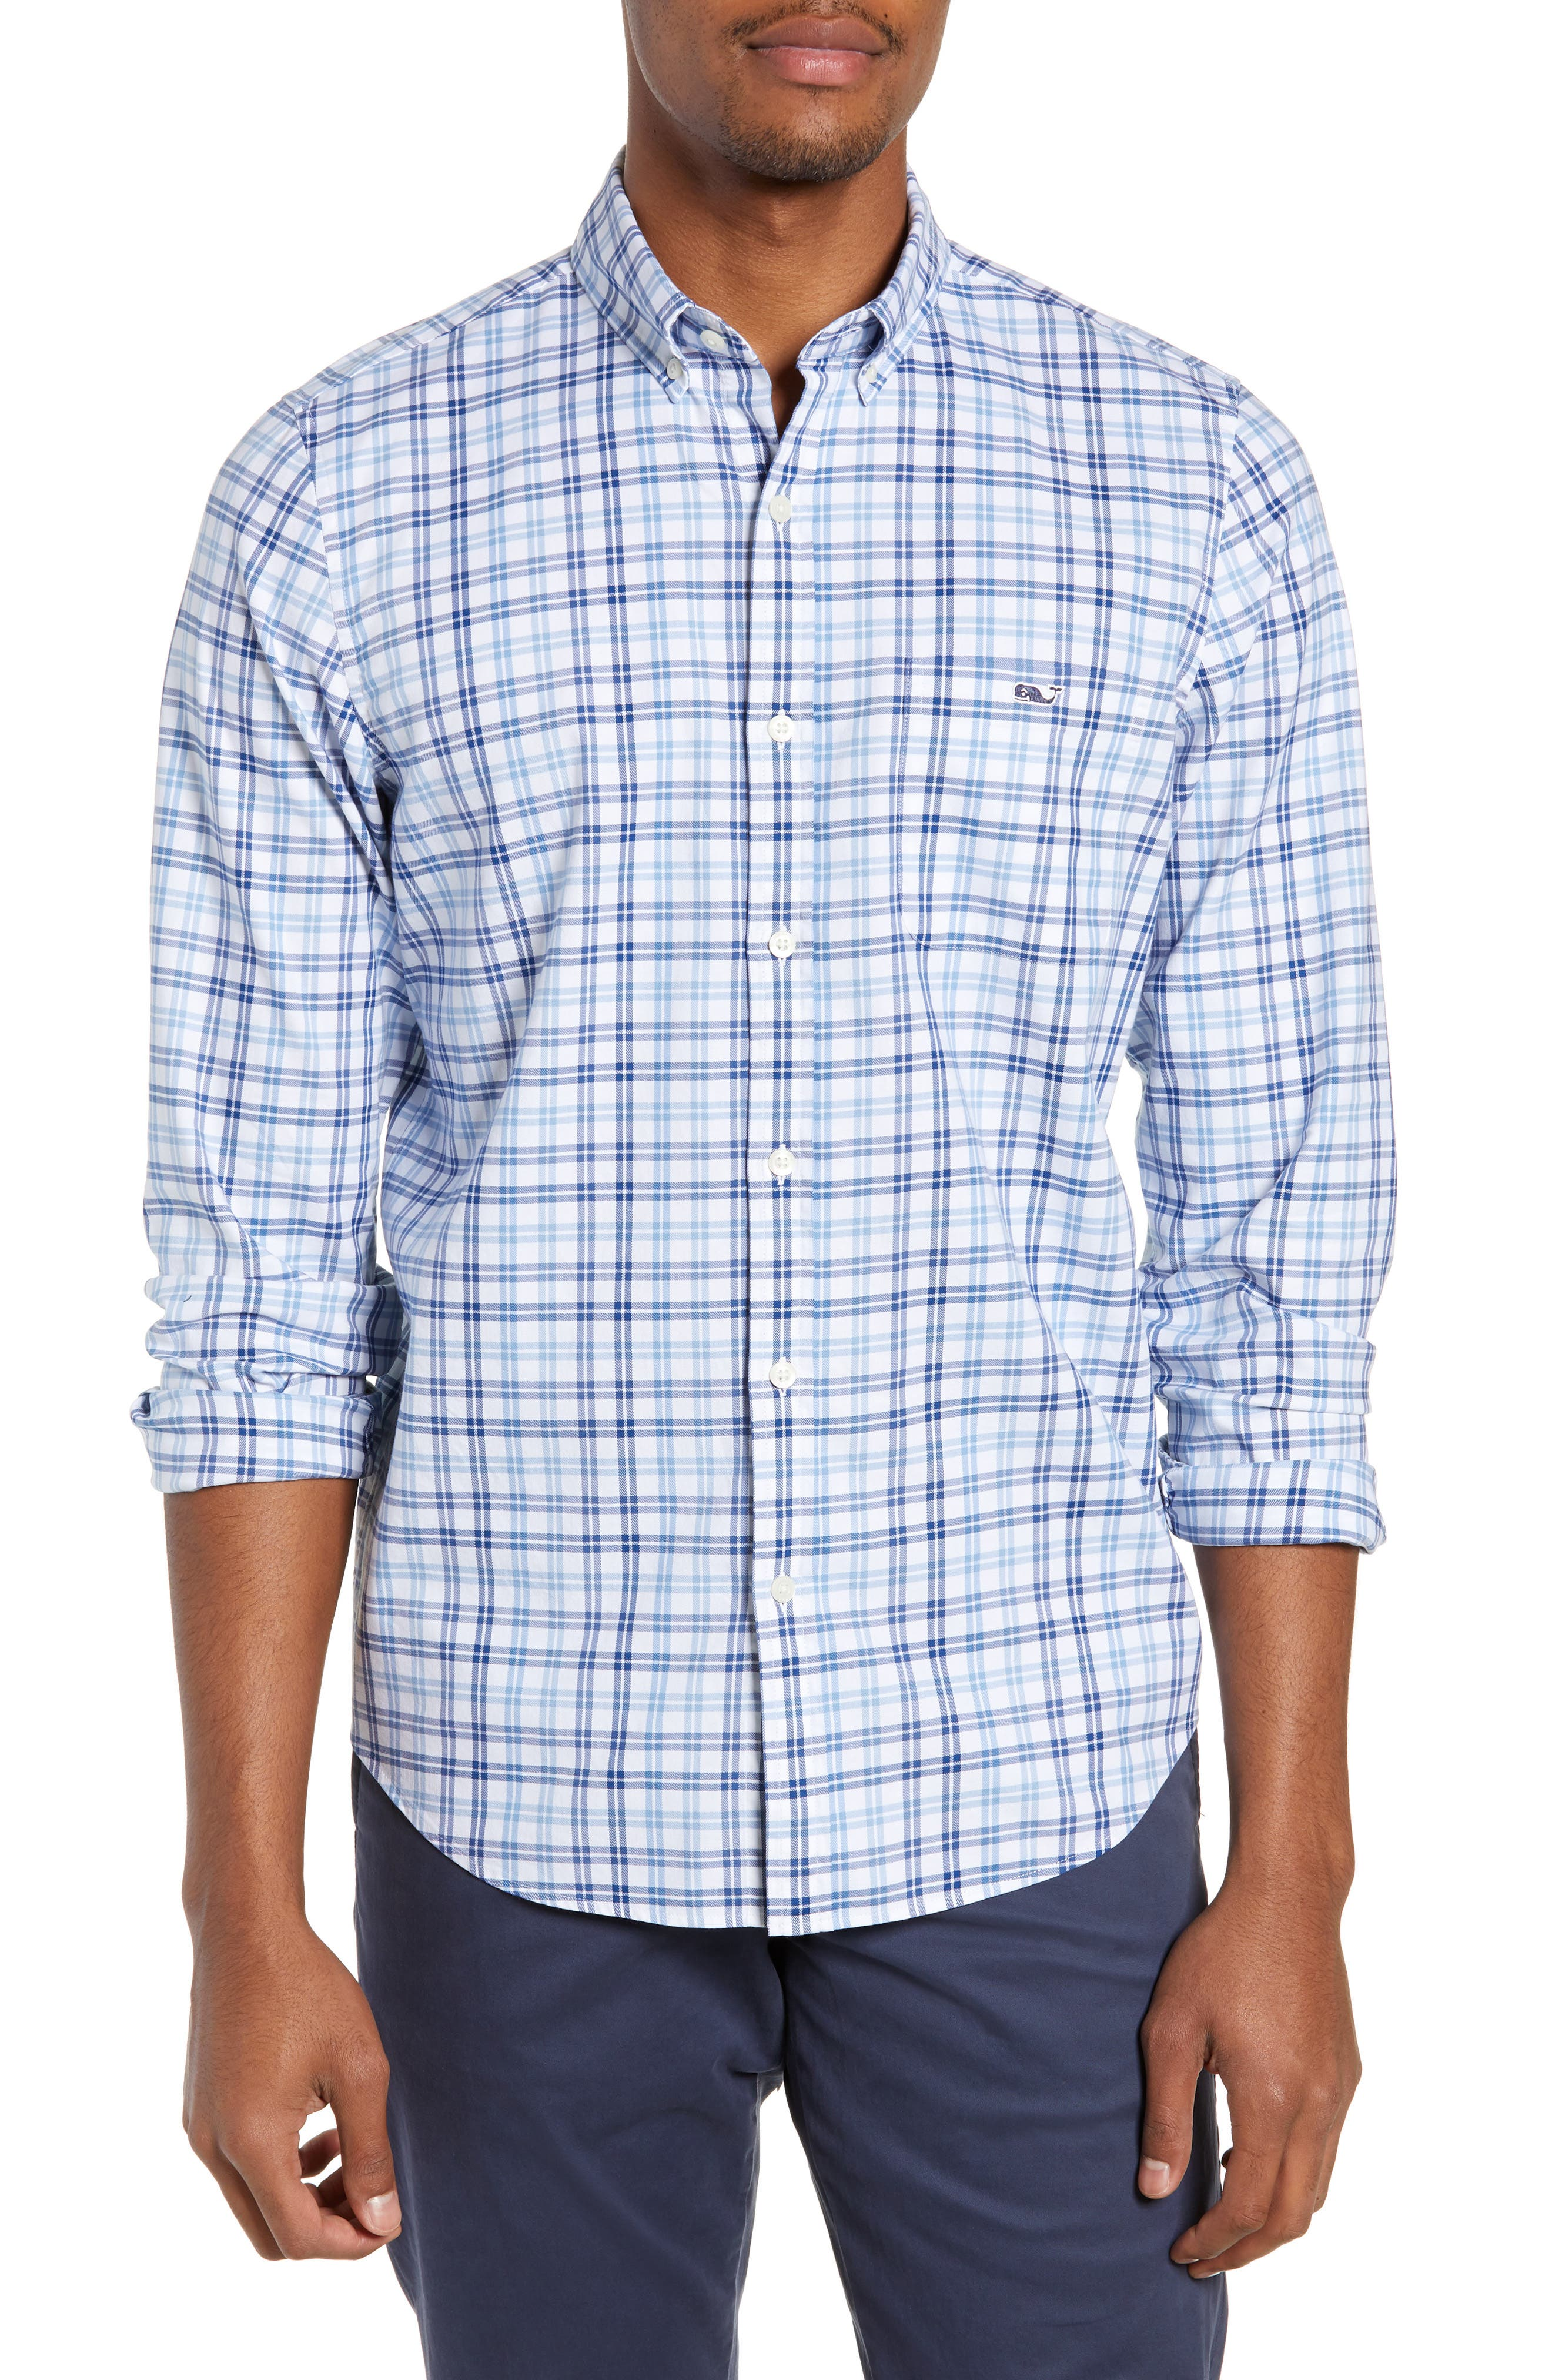 VINEYARD VINES Robins Nest Plaid Classic Fit Button-Down Shirt in Moonshine